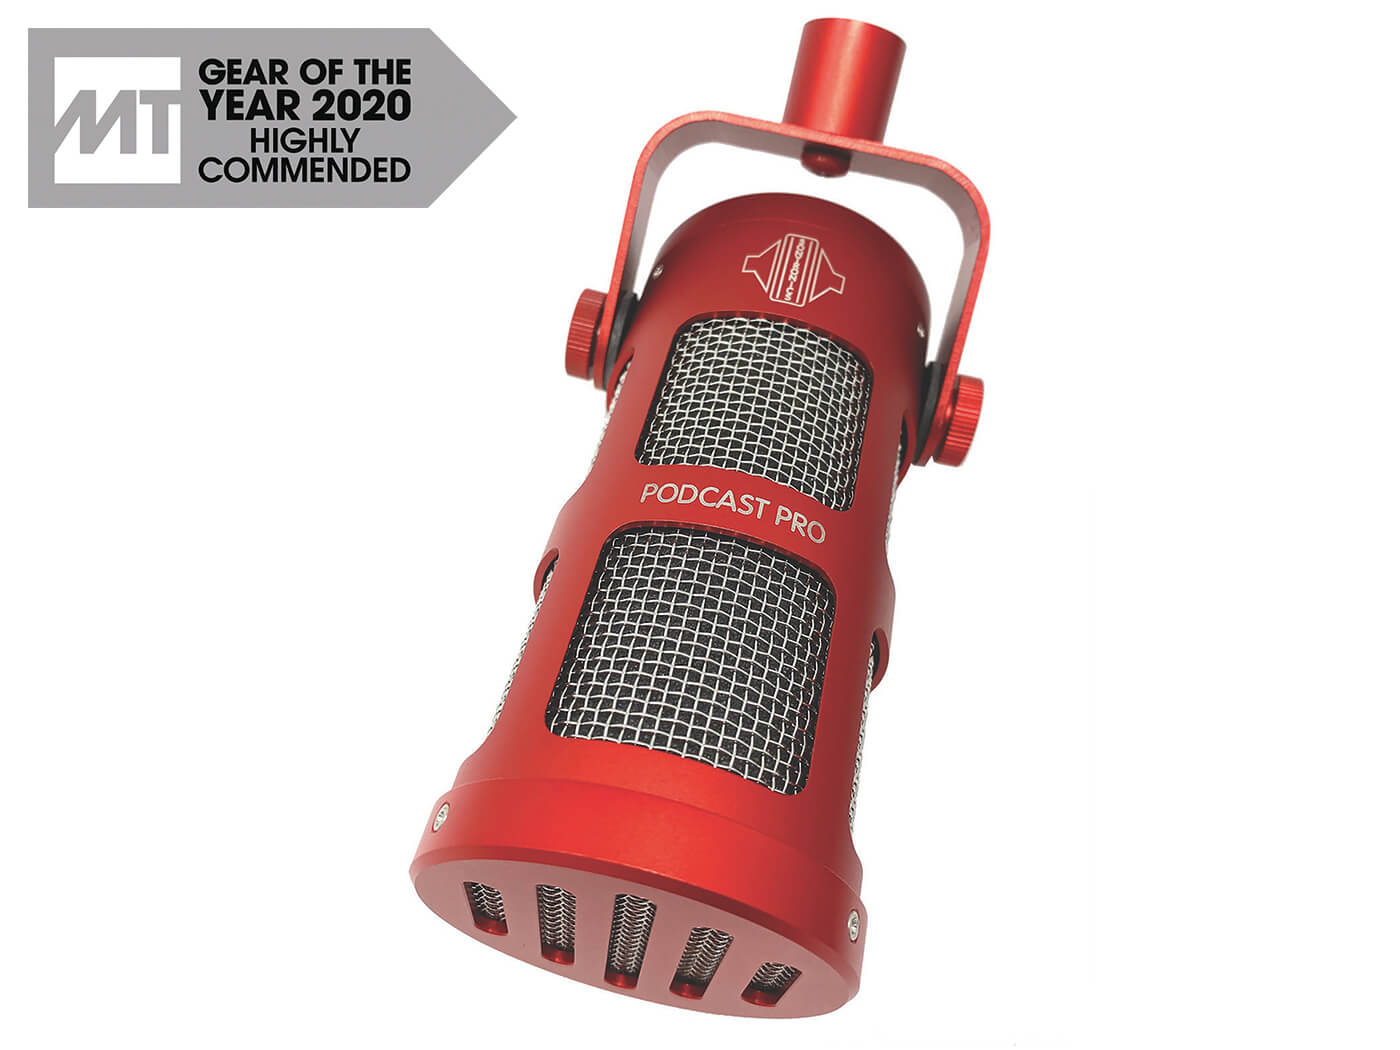 GOTY Best Microphones Highly Commended